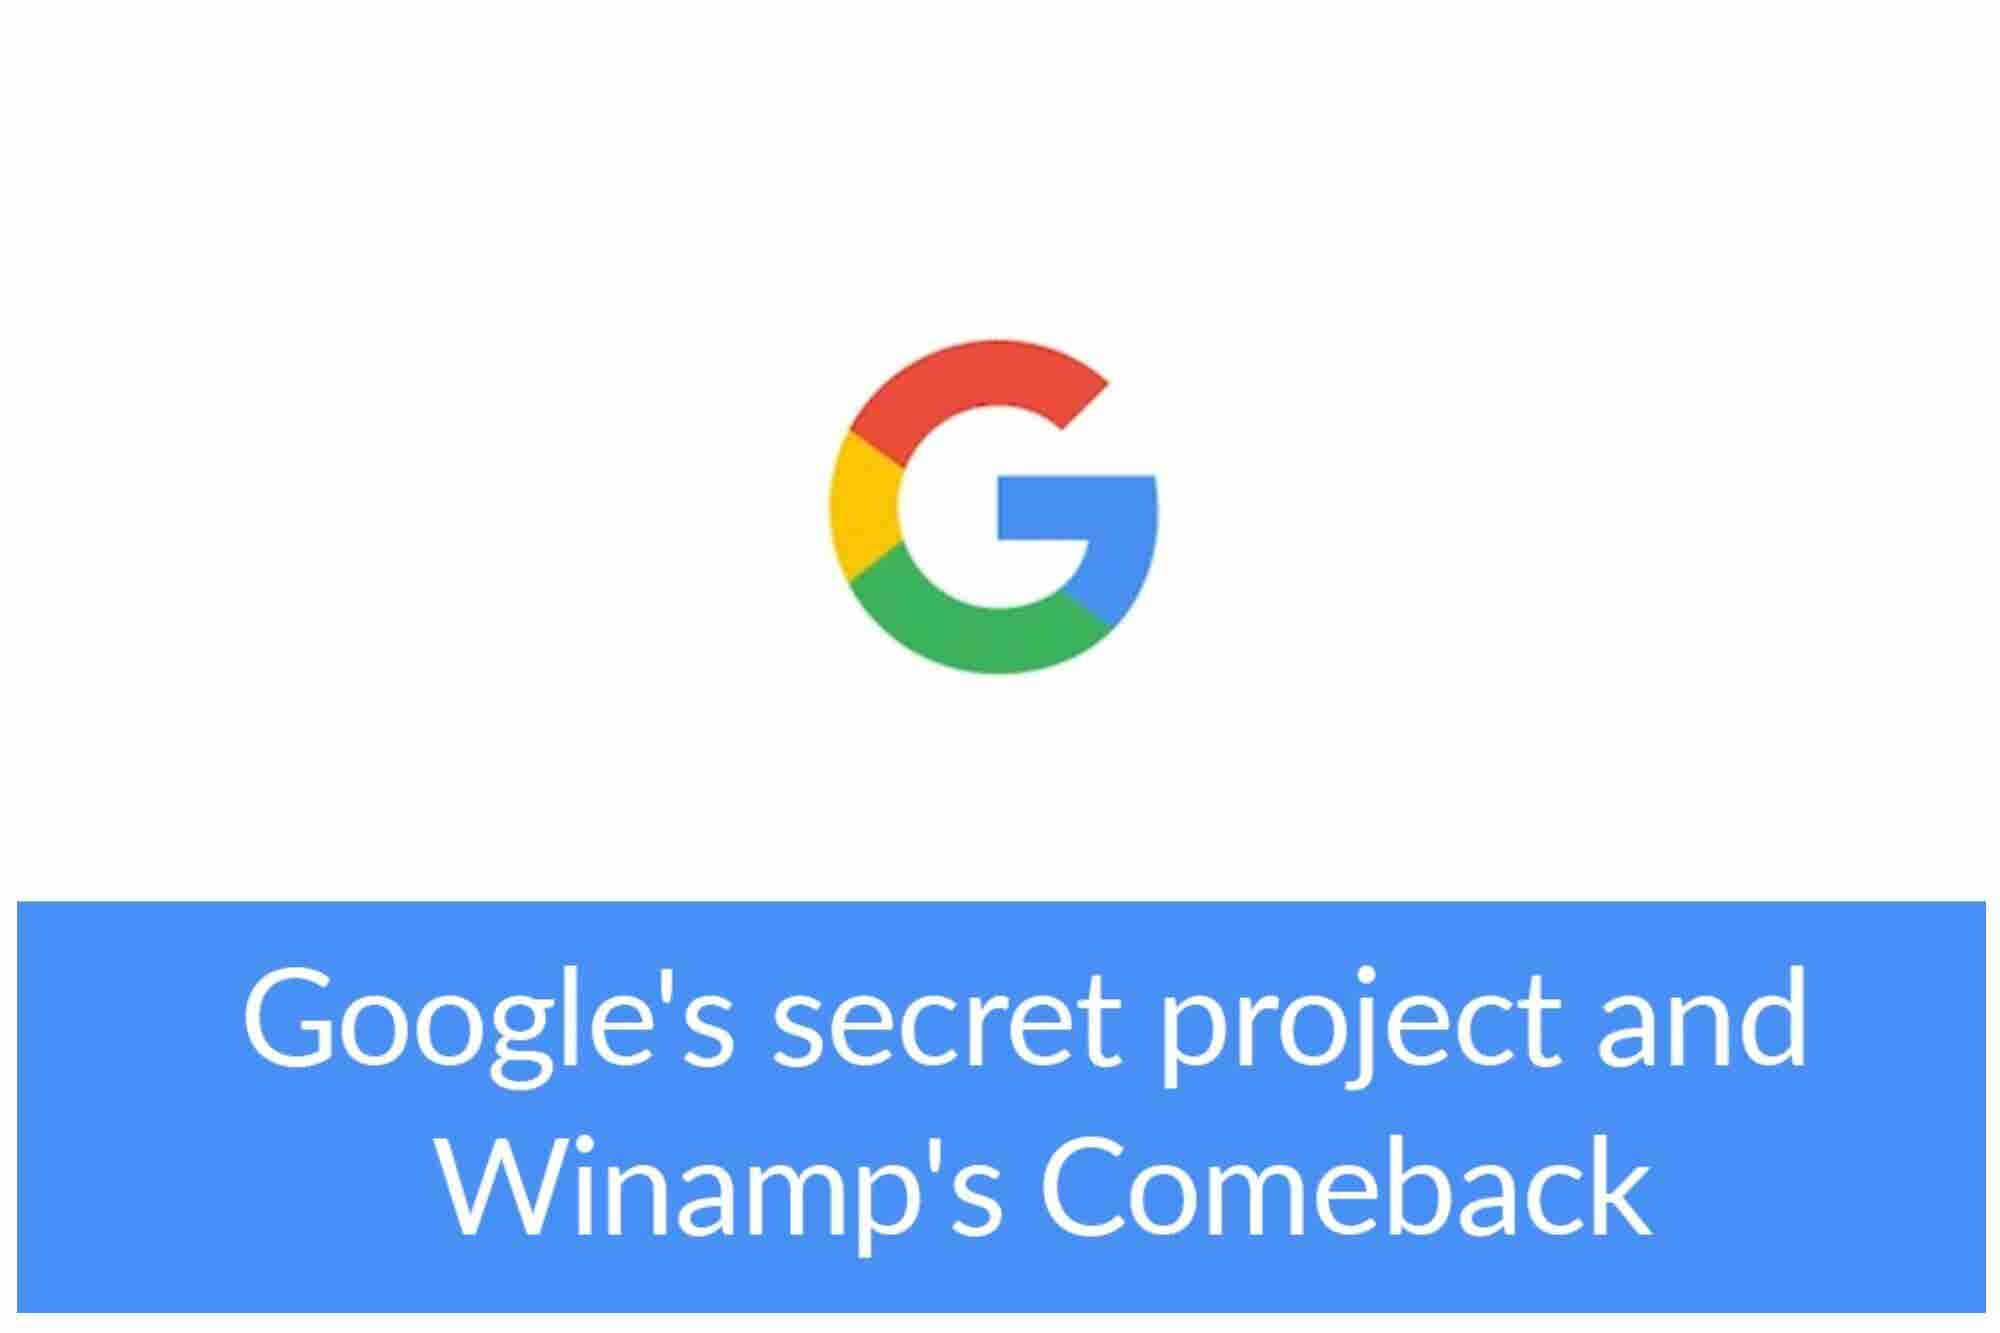 Google's Secret Project and Winamp's Comeback: 4 Things to Know